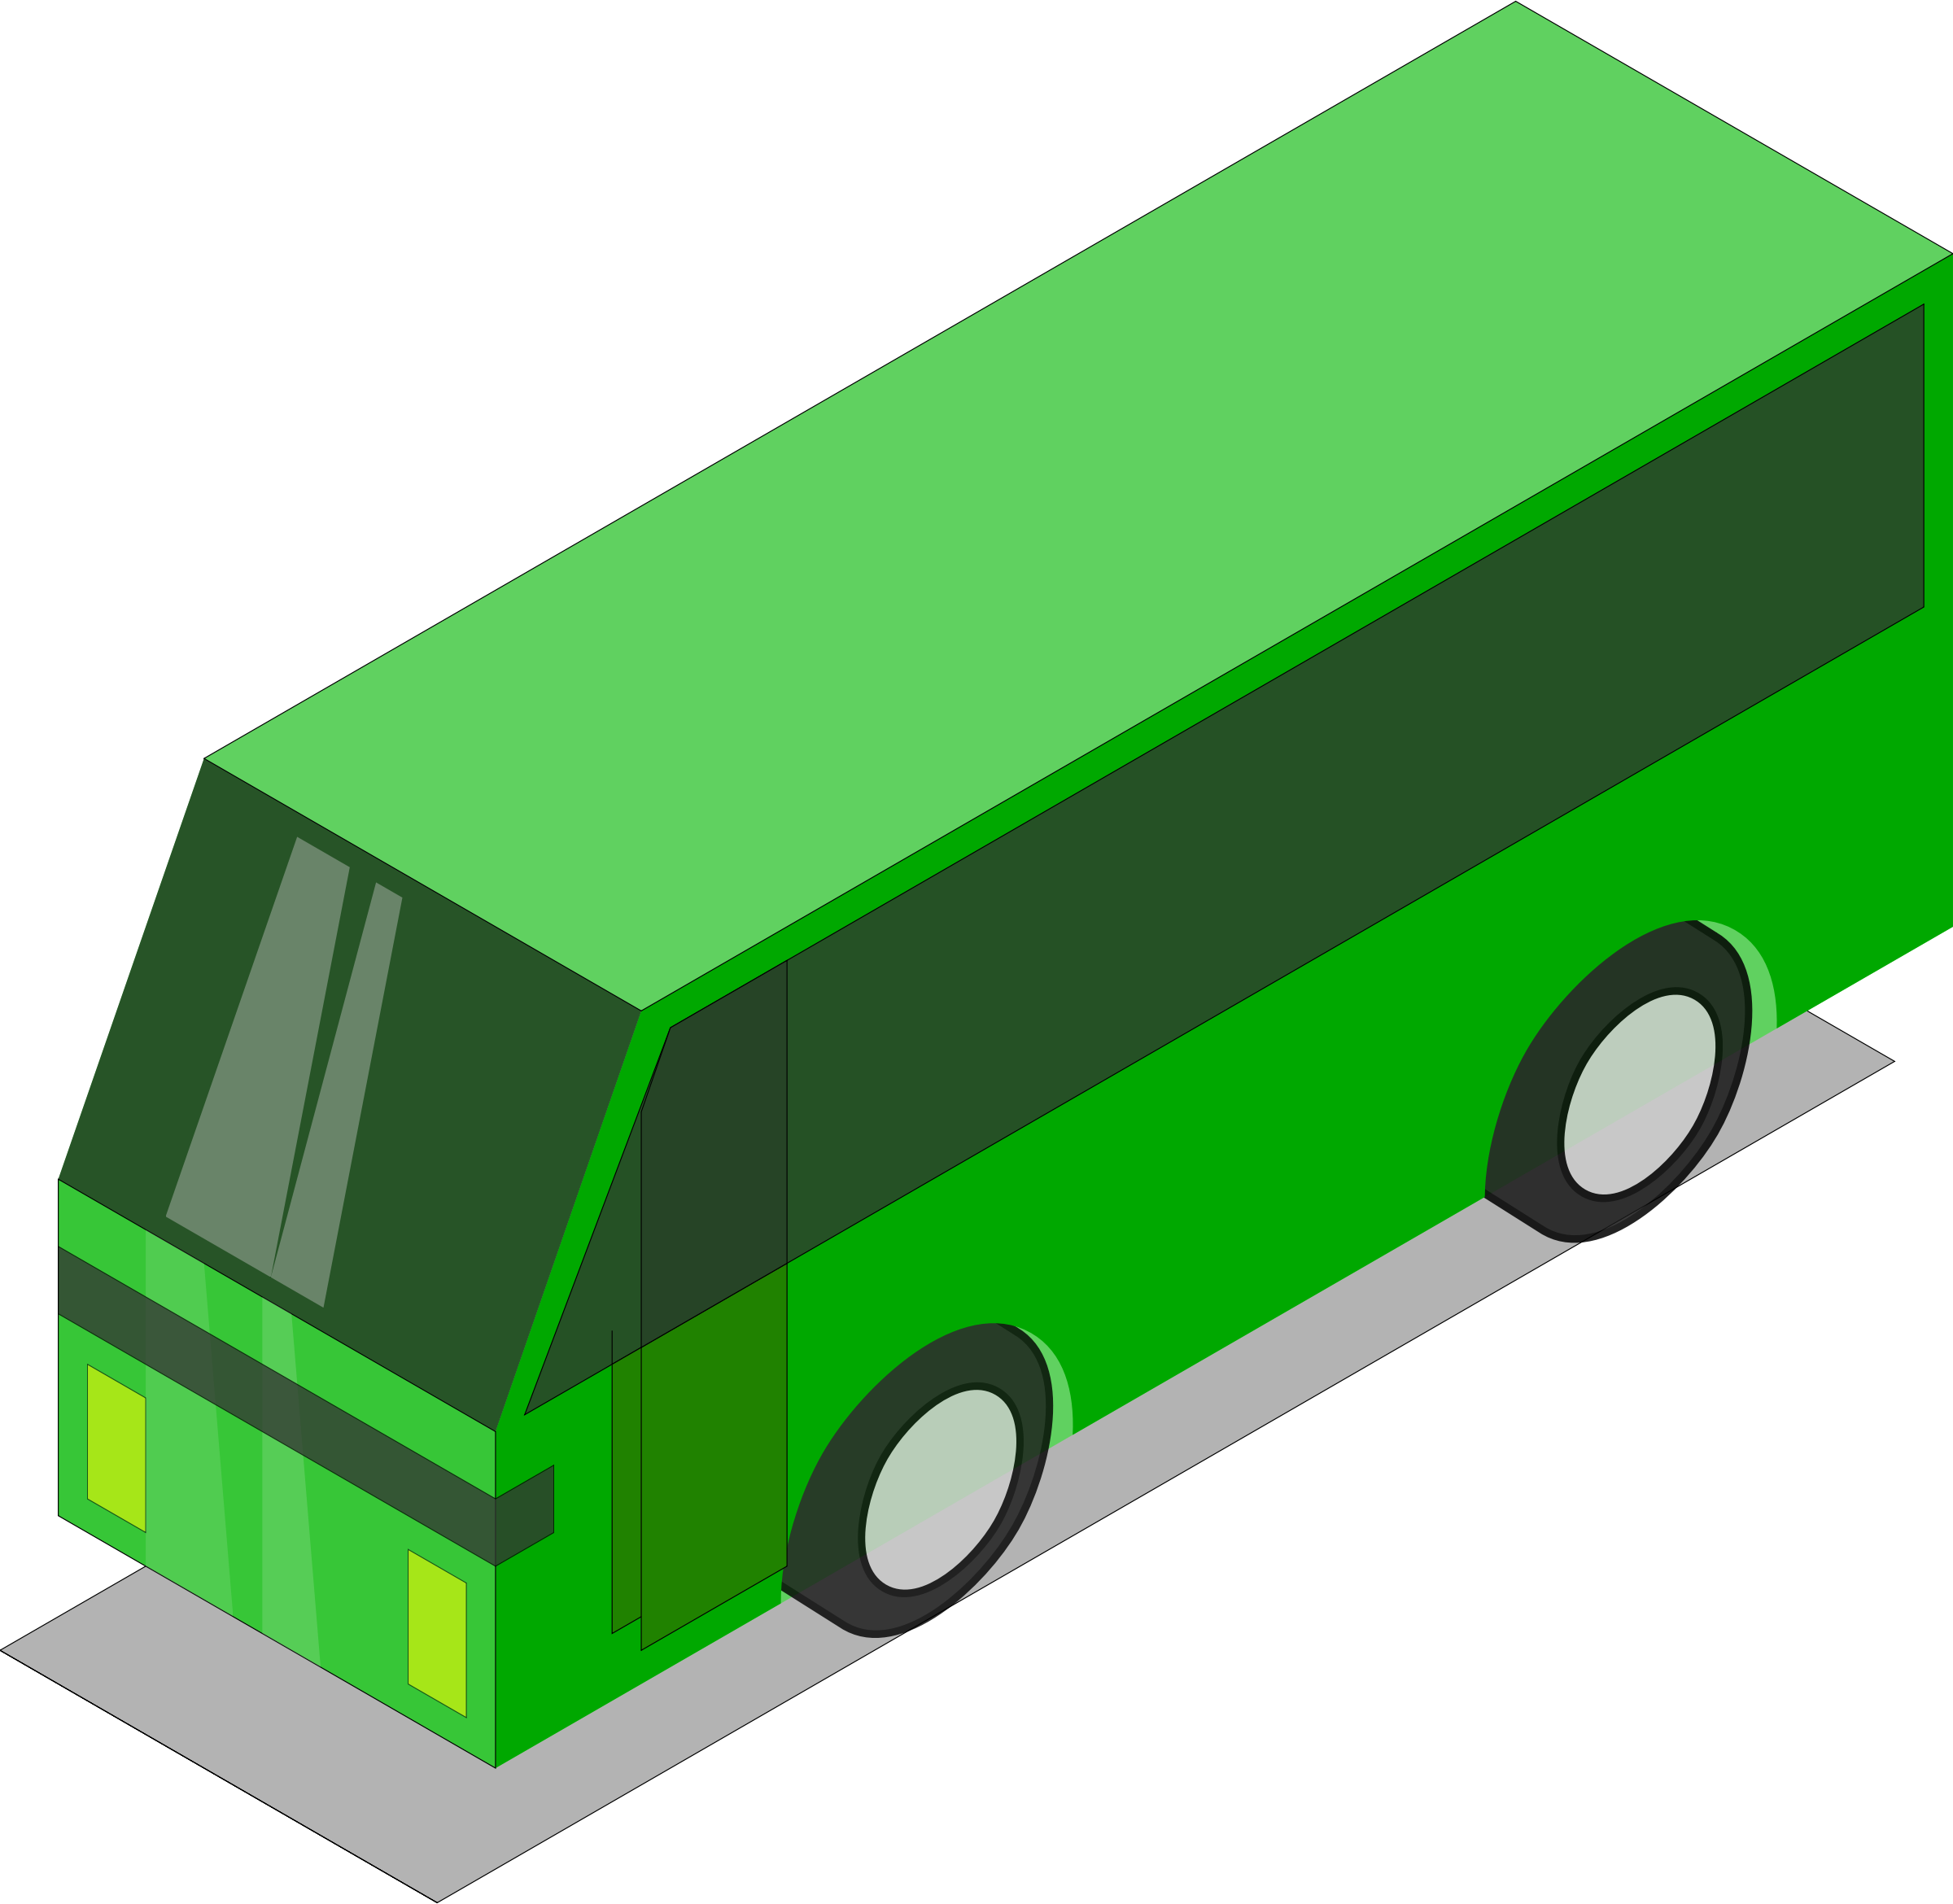 Green bus by Astro